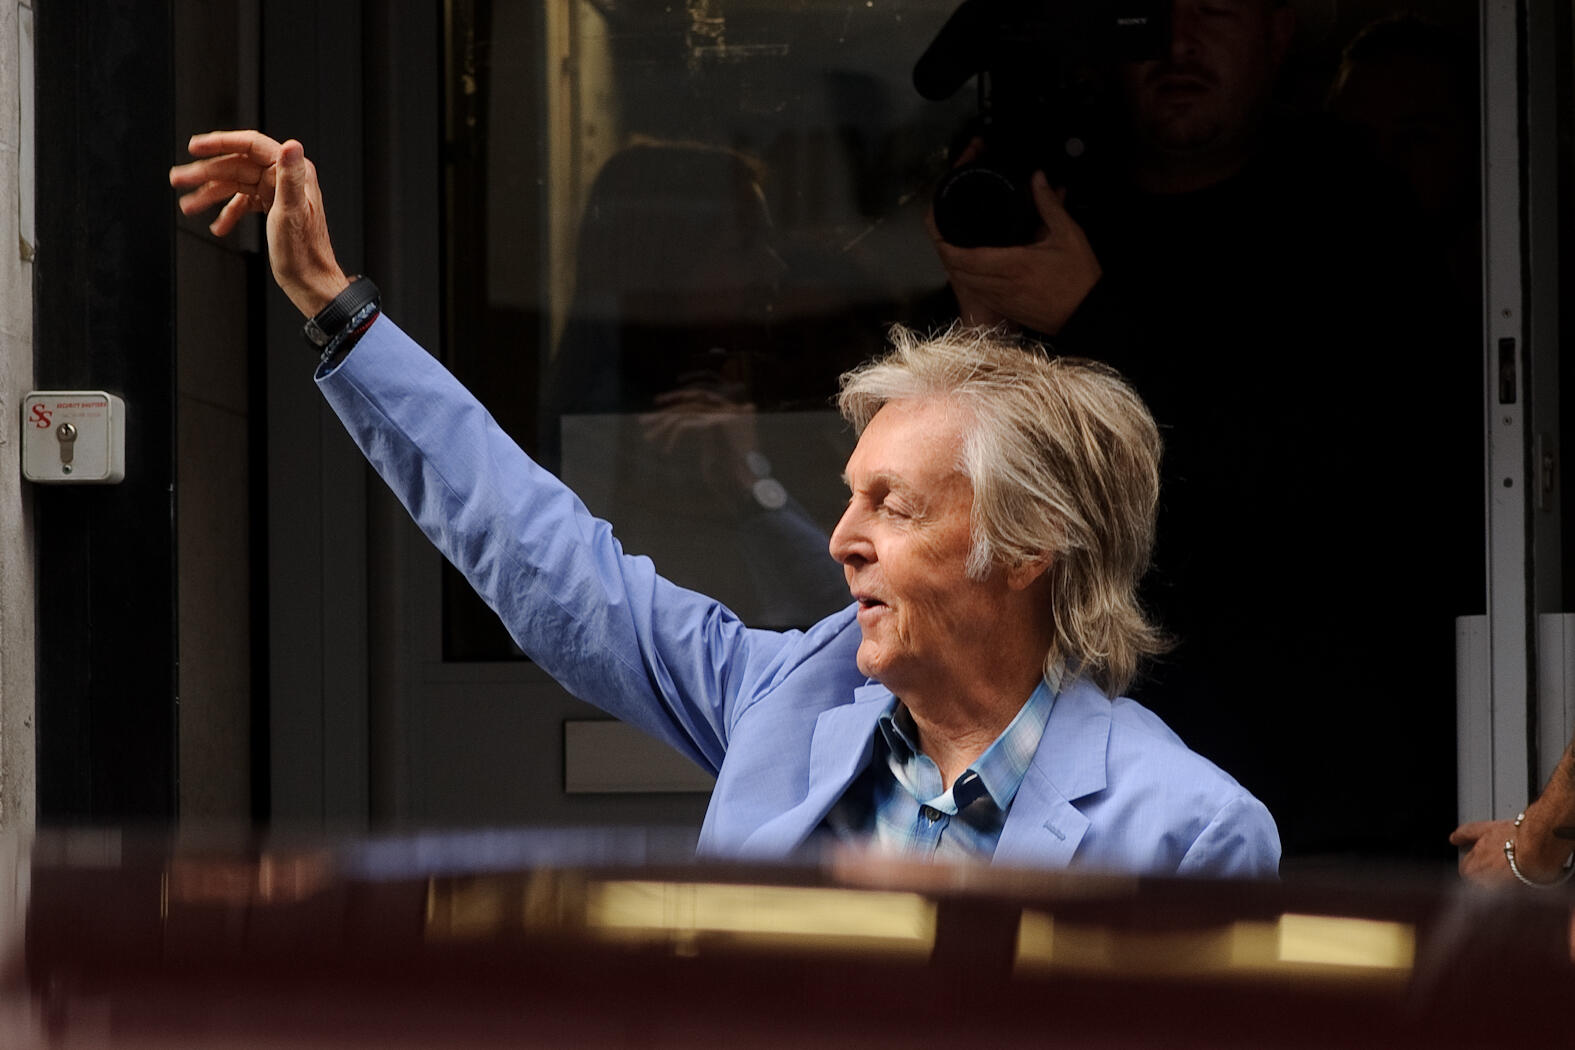 Paul McCartney Unveils New Album, Says He's Plans To Live To 100